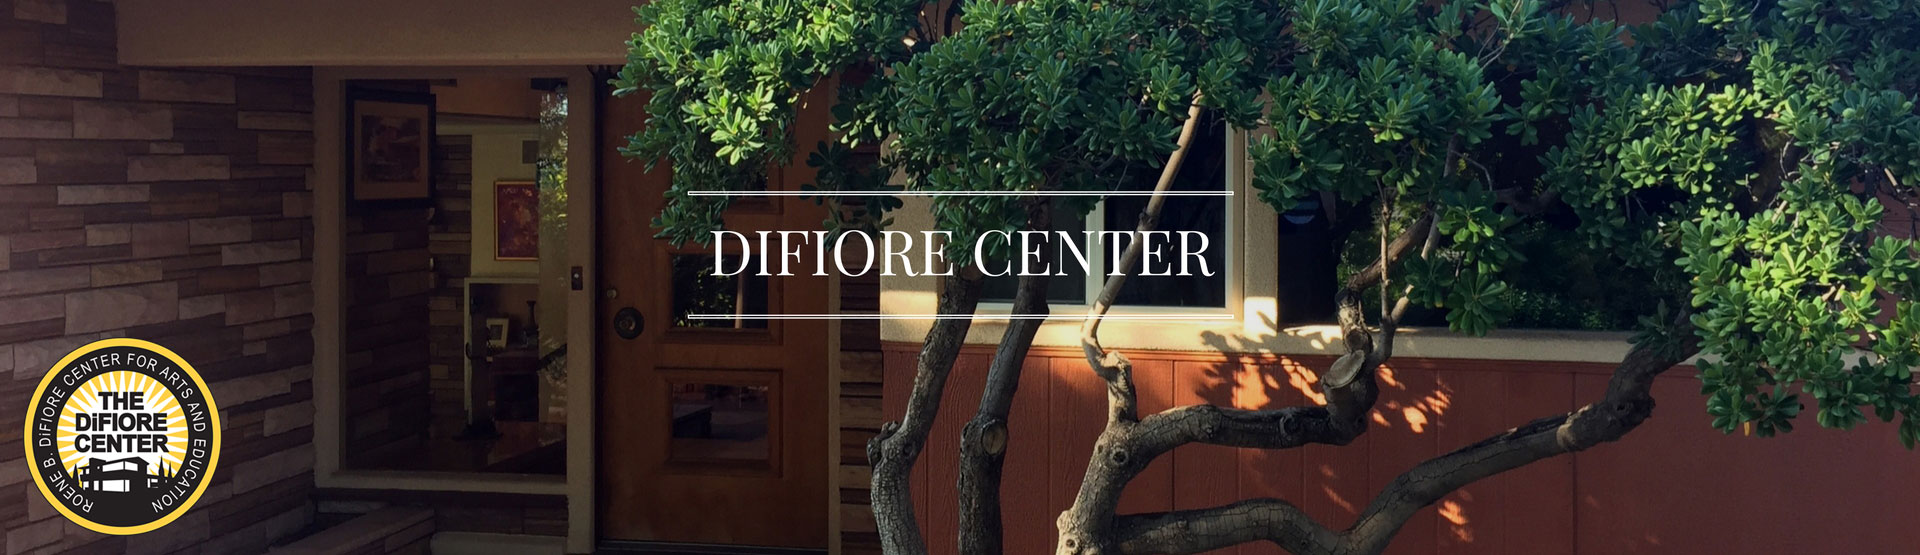 The DiFiore Center-Banner